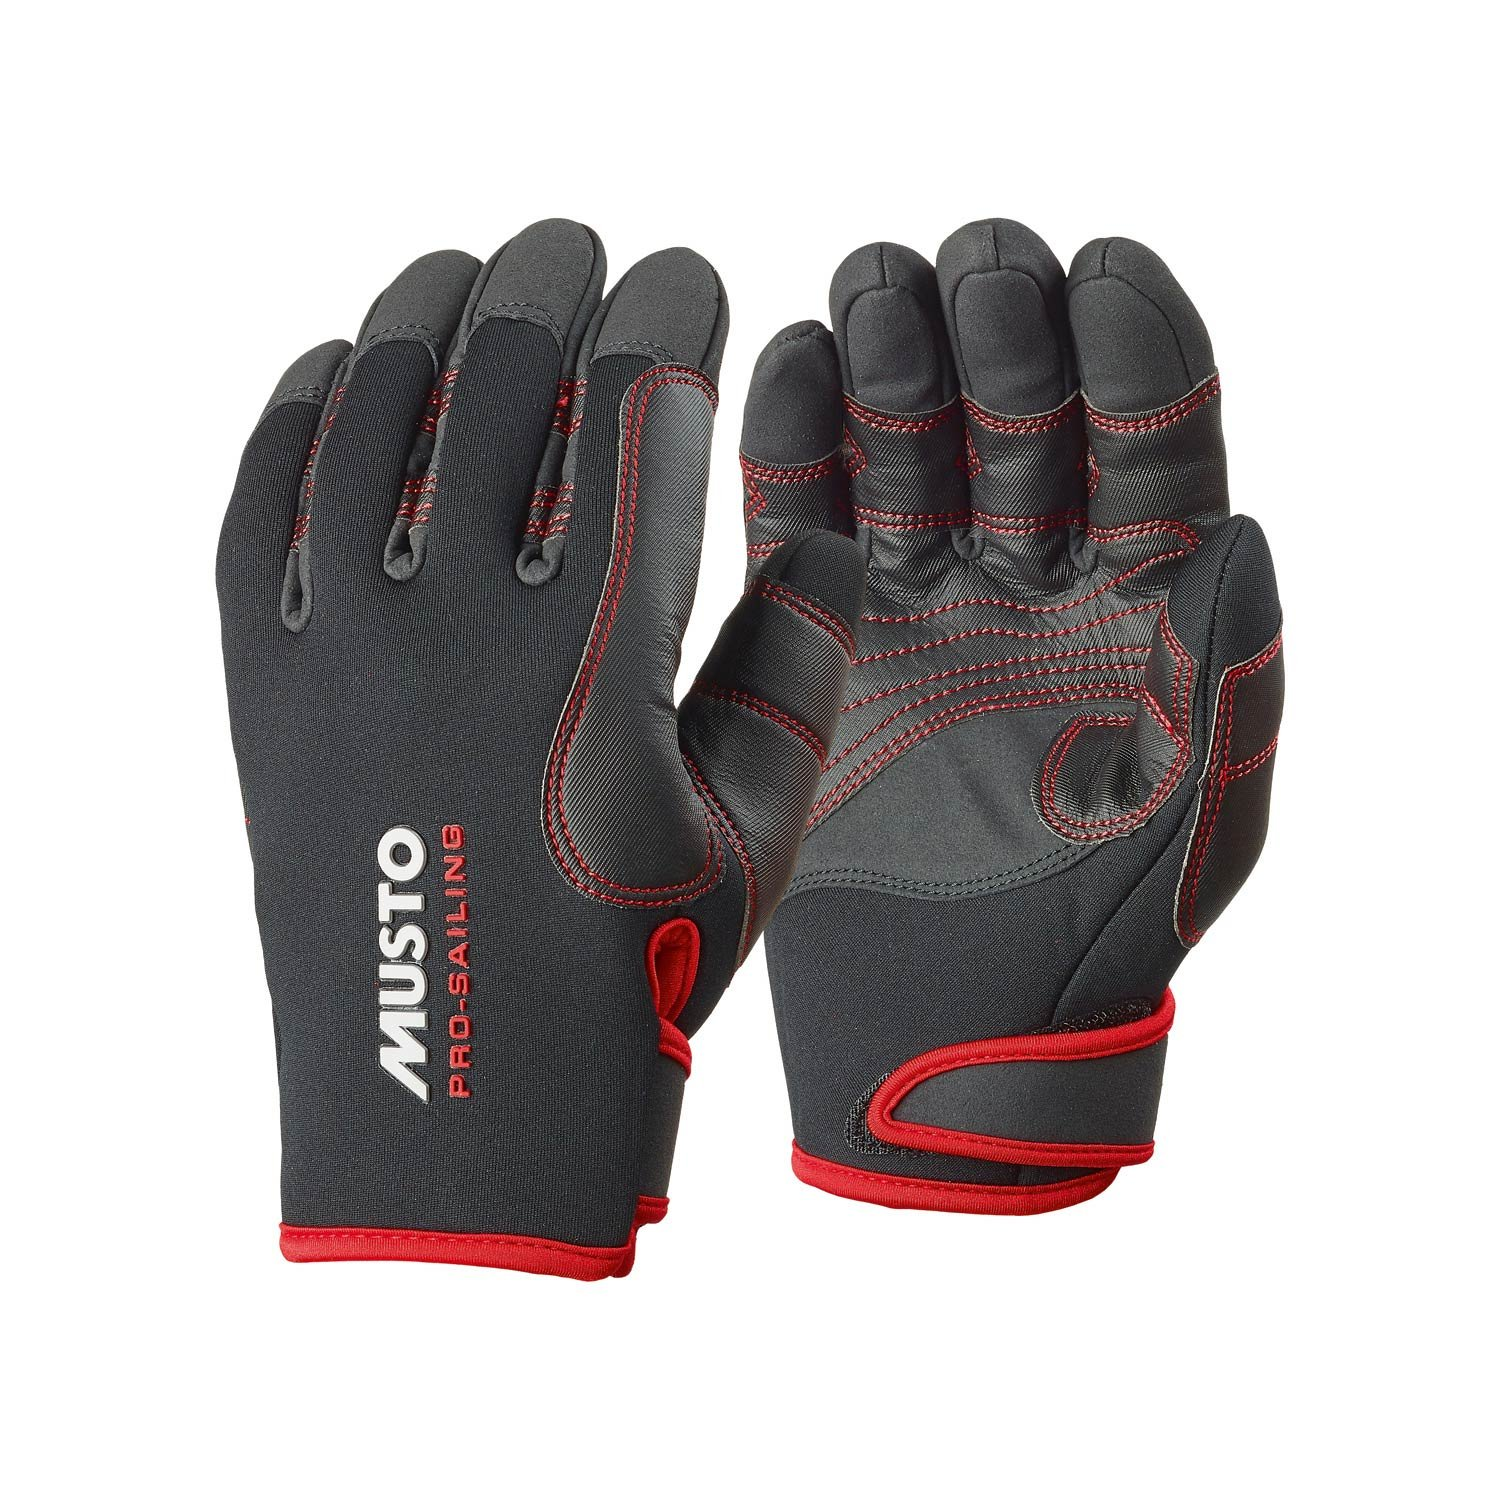 1a1511ca89 2016 Musto Performance Winter Long Finger Gloves nero AS0594 AS0594 AS0594  Dimensiones- - ExtraLarge S Nero B00YAEU1F6 | benevento | Meno Costosi Di  ...